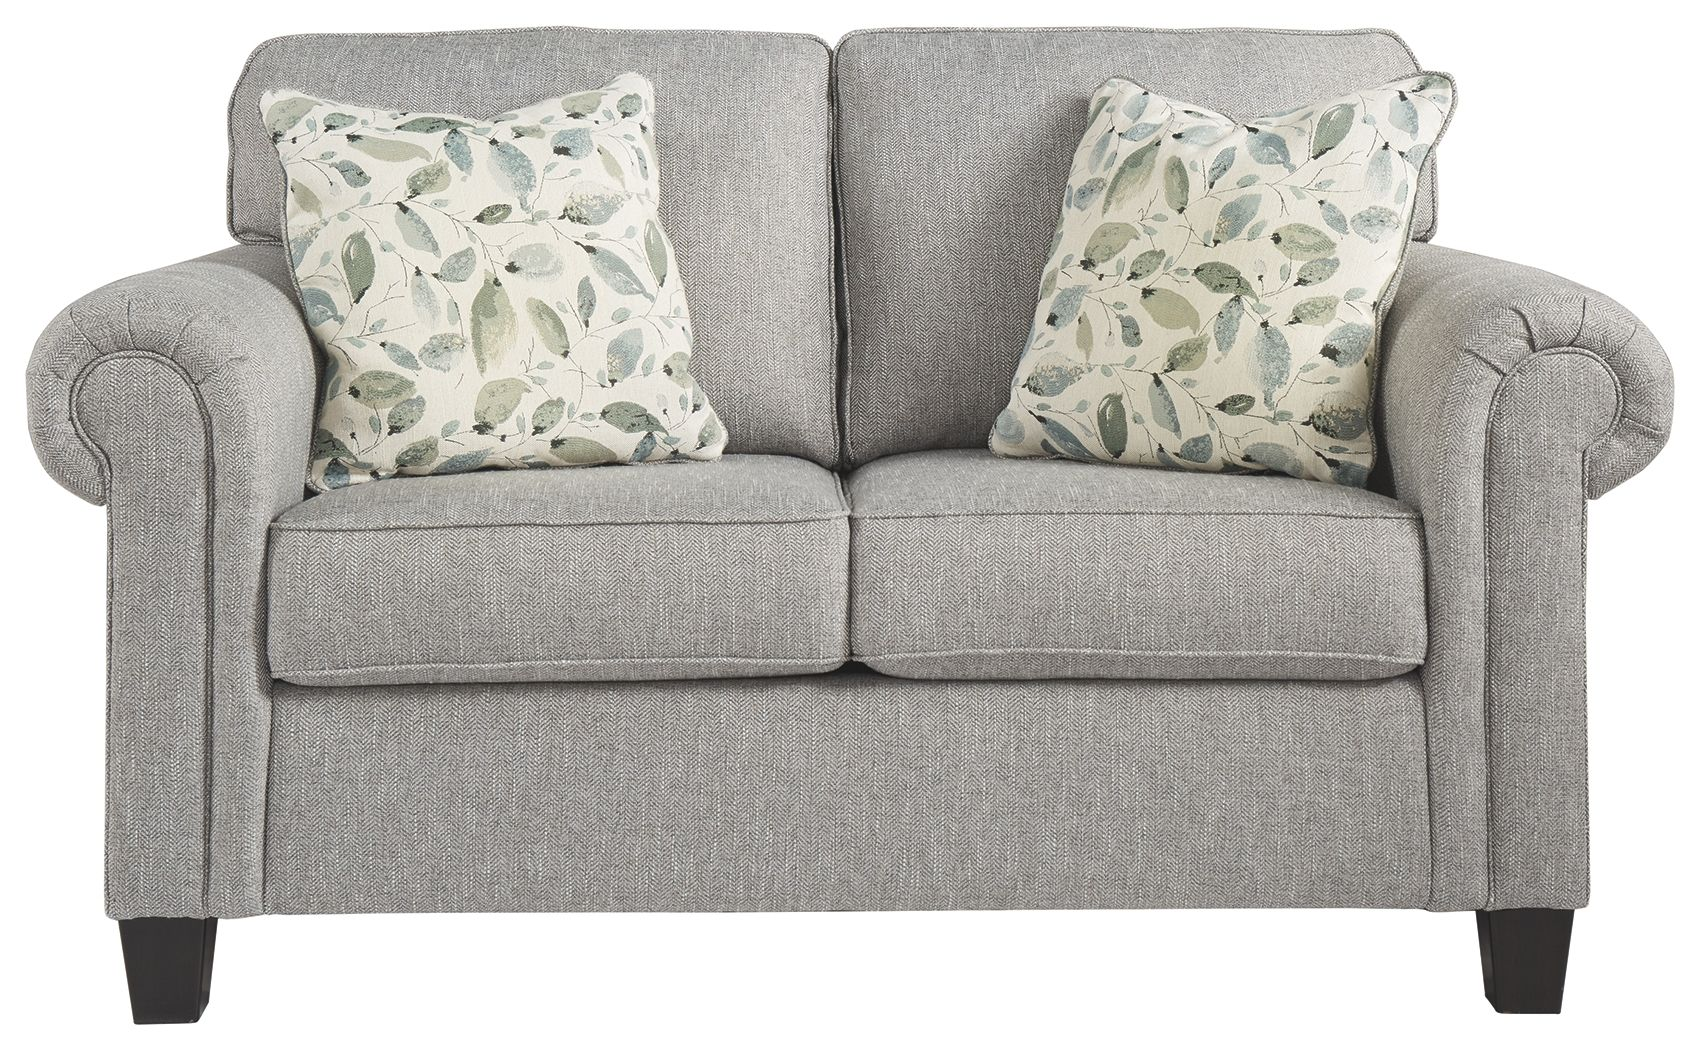 Alandari Loveseat | Calgary's Furniture Store